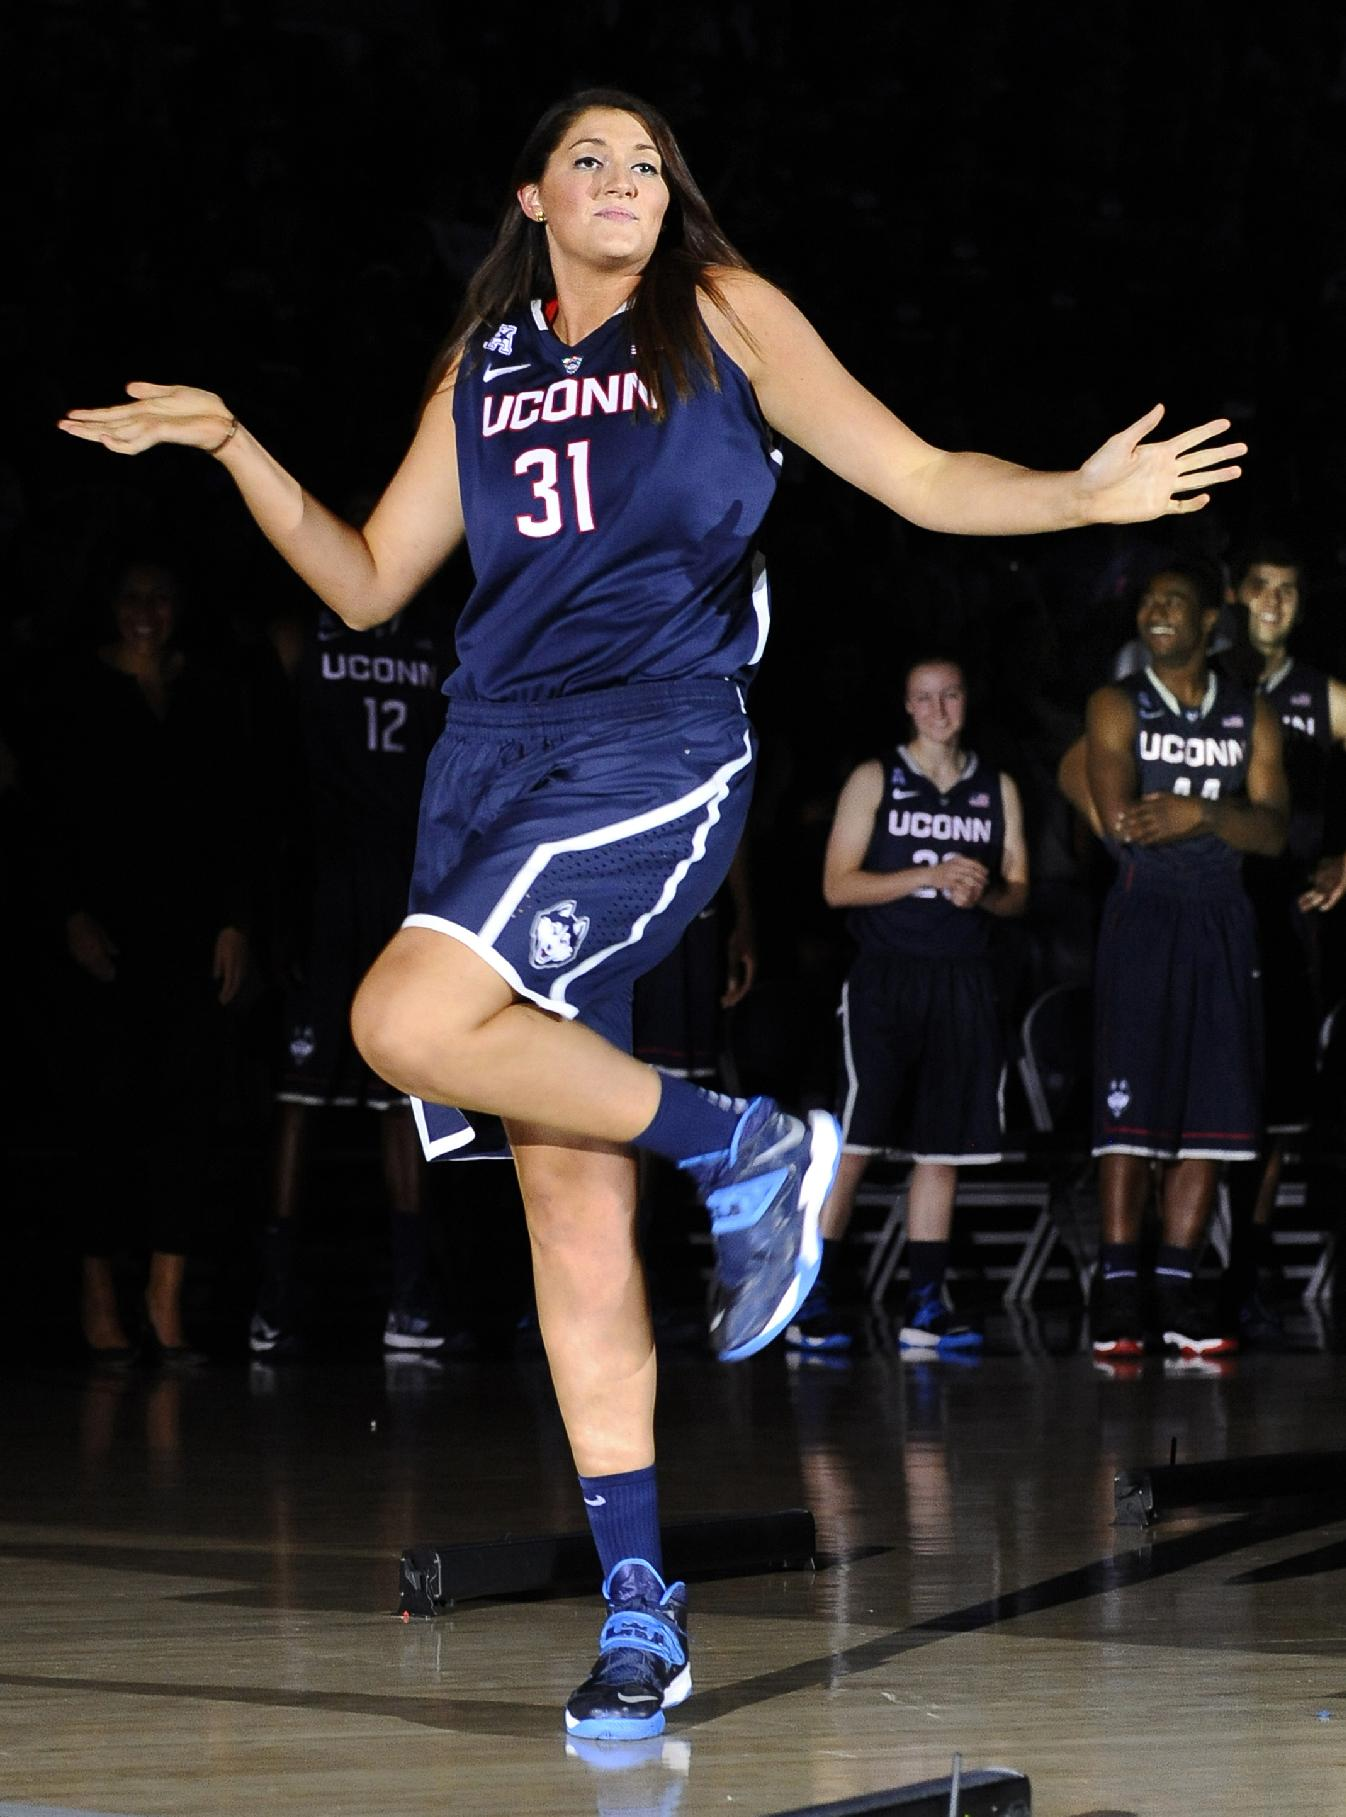 In this Oct. 18, 2013 file photo, Connecticut's Stefanie Dolson dances as she is introduced at the men's and women's basketball teams' First Night event in Storrs, Conn. On Saturday, March 1, 2014, Dolson and fellow senior Bria Hartley will have their names added to the